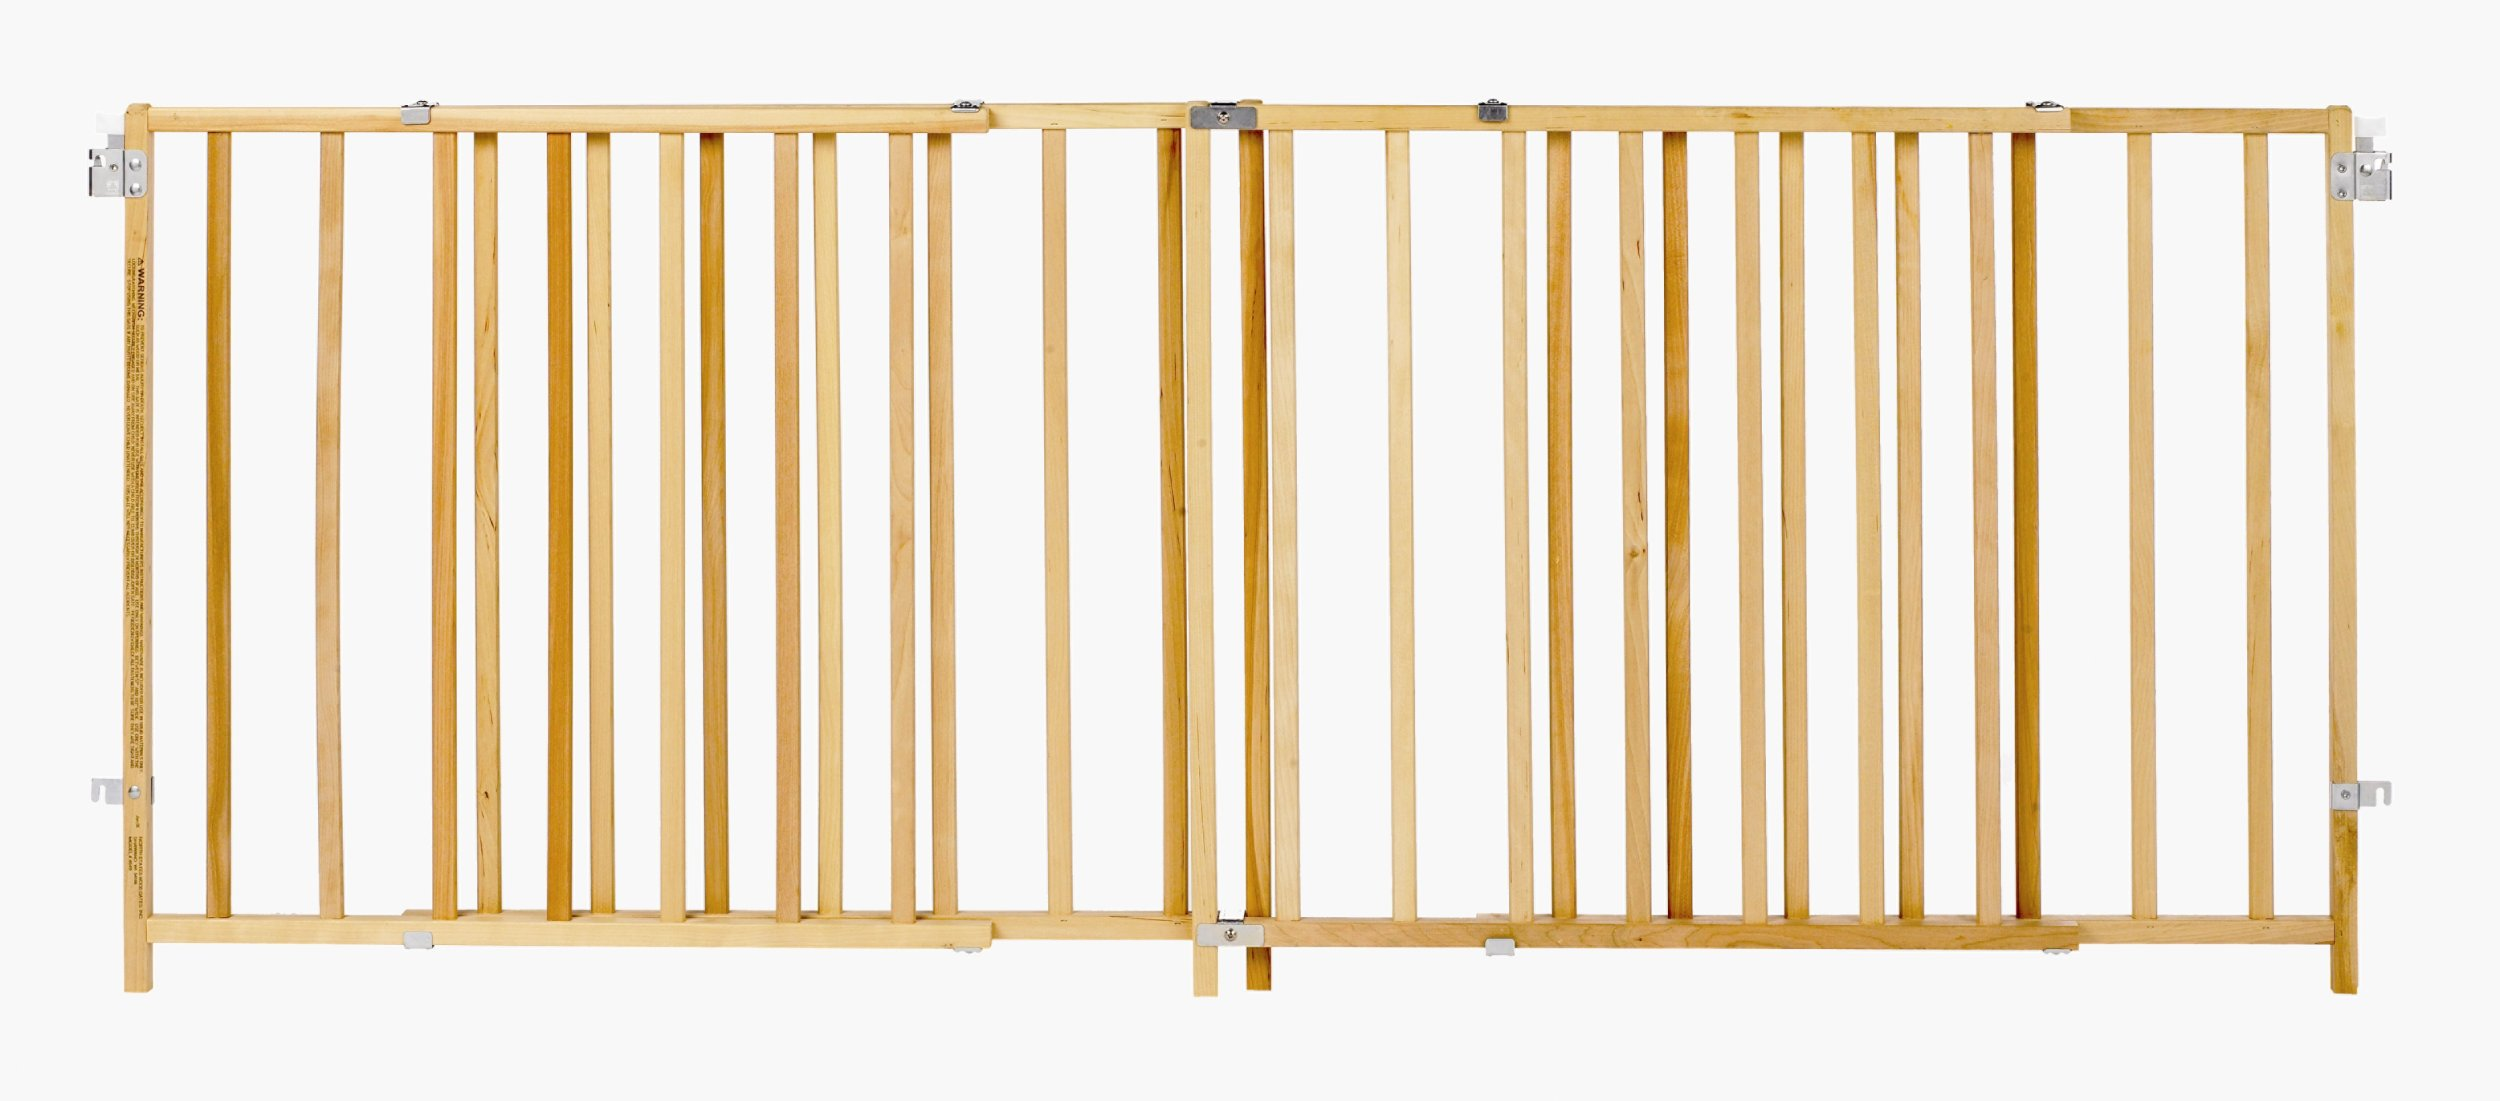 Supergate X Wide Swing Wood Gate, Fits Spaces between 60